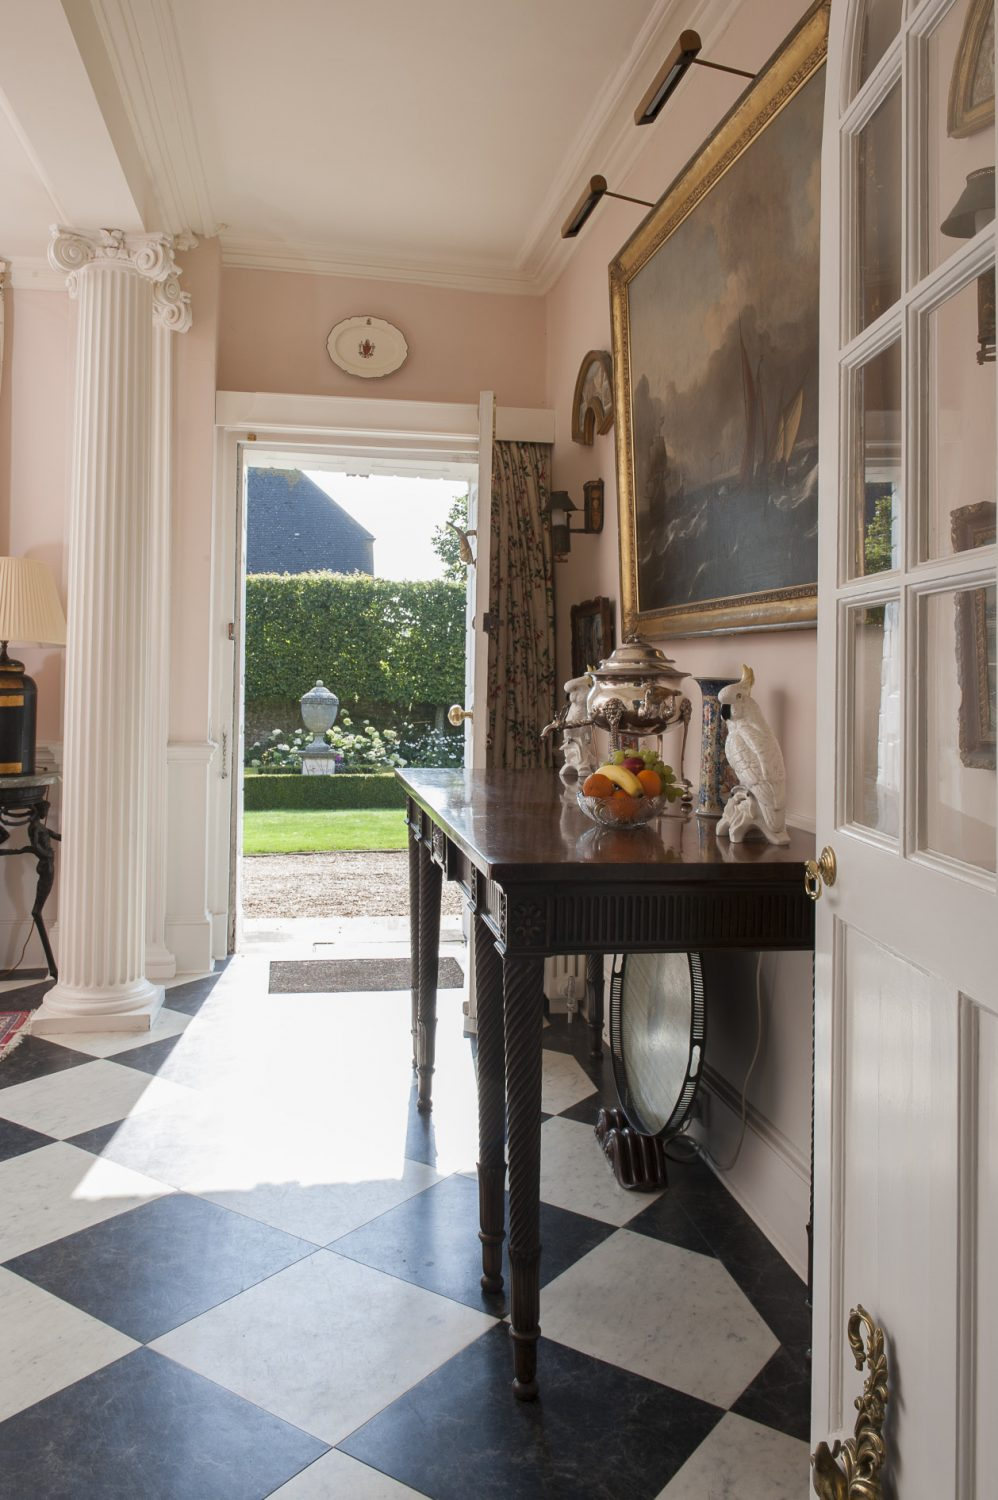 I used Amtico black and white floor tiles on the diagonal to keep the sense of an entrance hall but the colour of the walls is a welcoming one